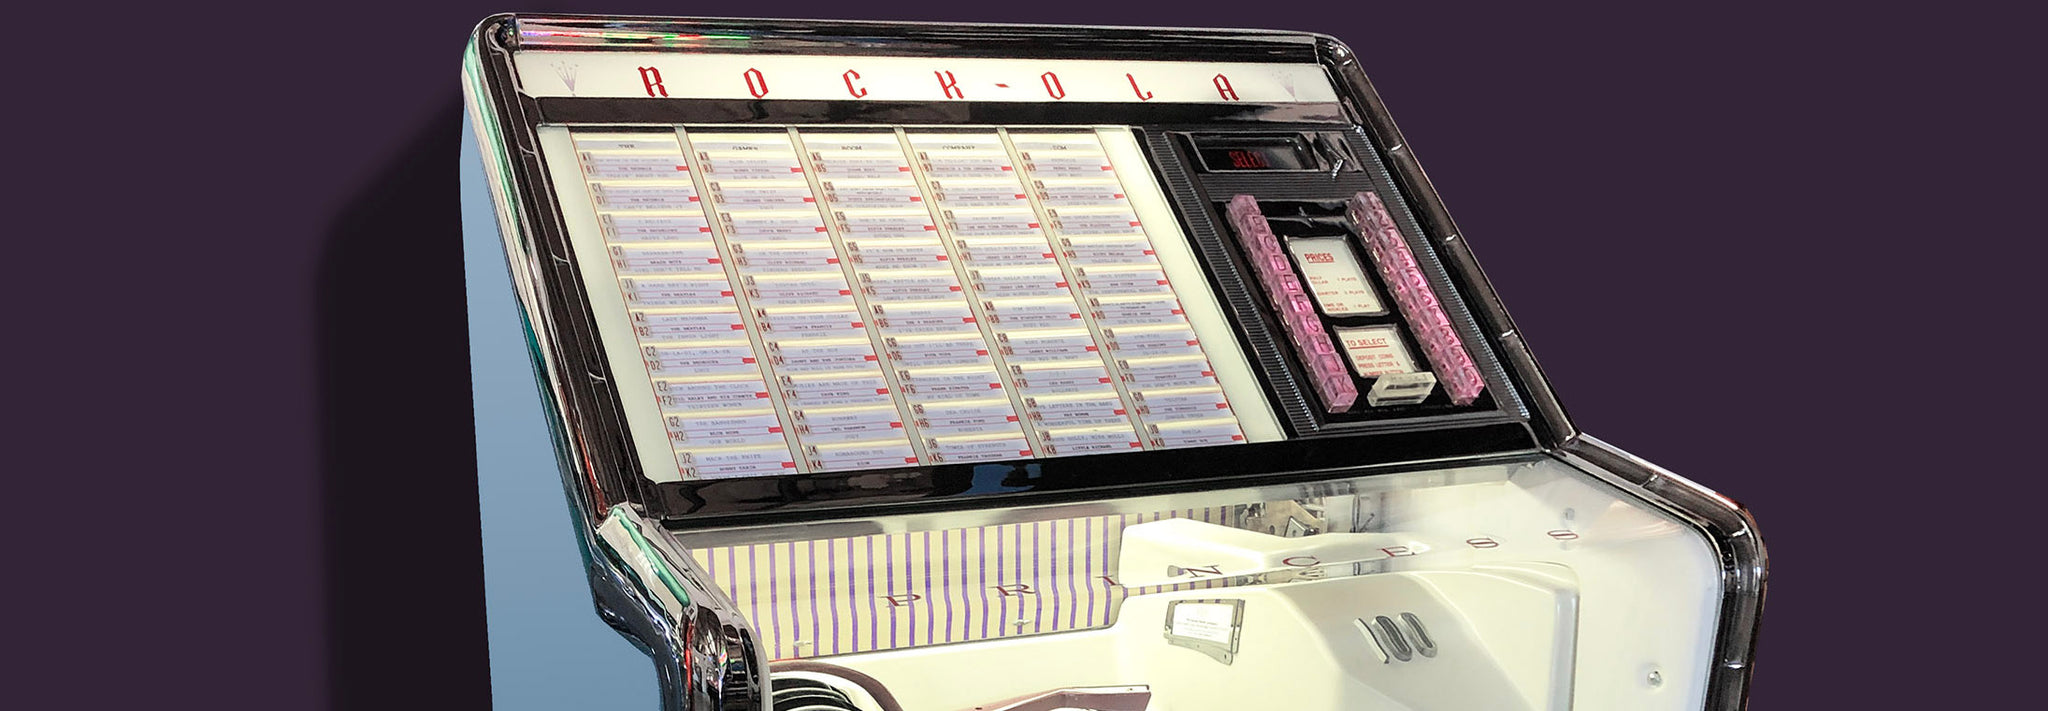 3 great reasons to buy a vintage jukebox